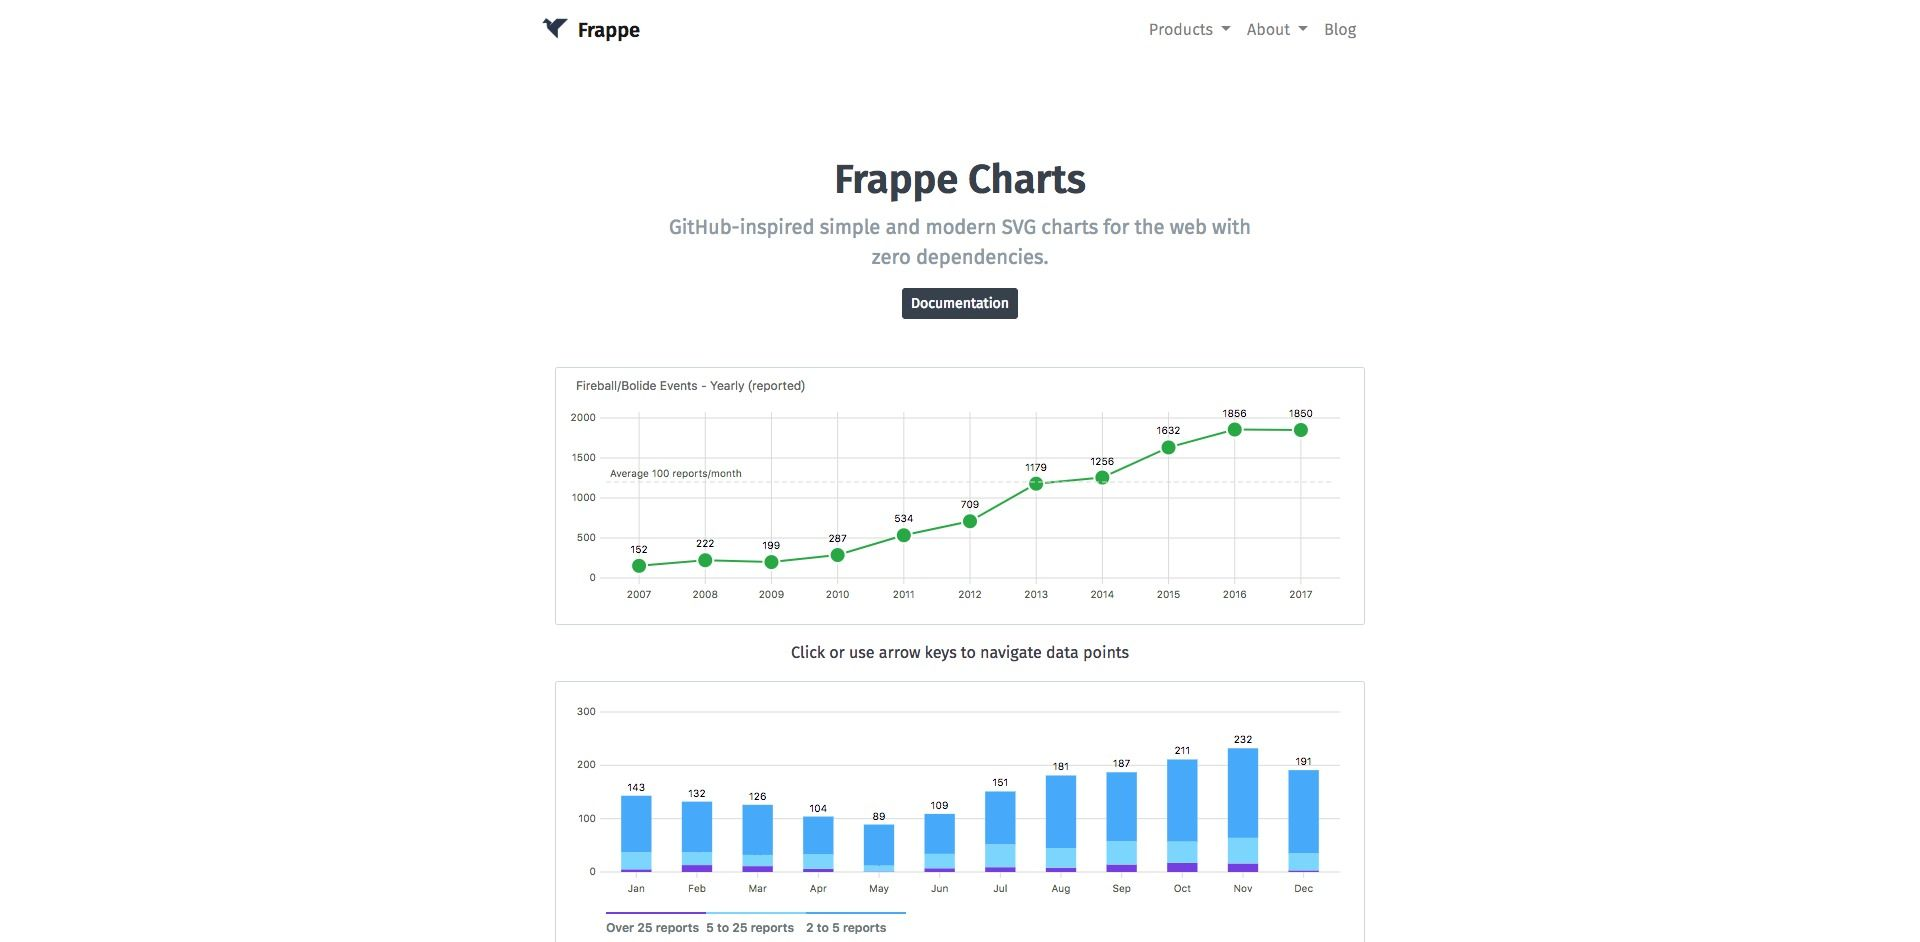 Frappe Charts GitHub-inspired simple and modern SVG charts